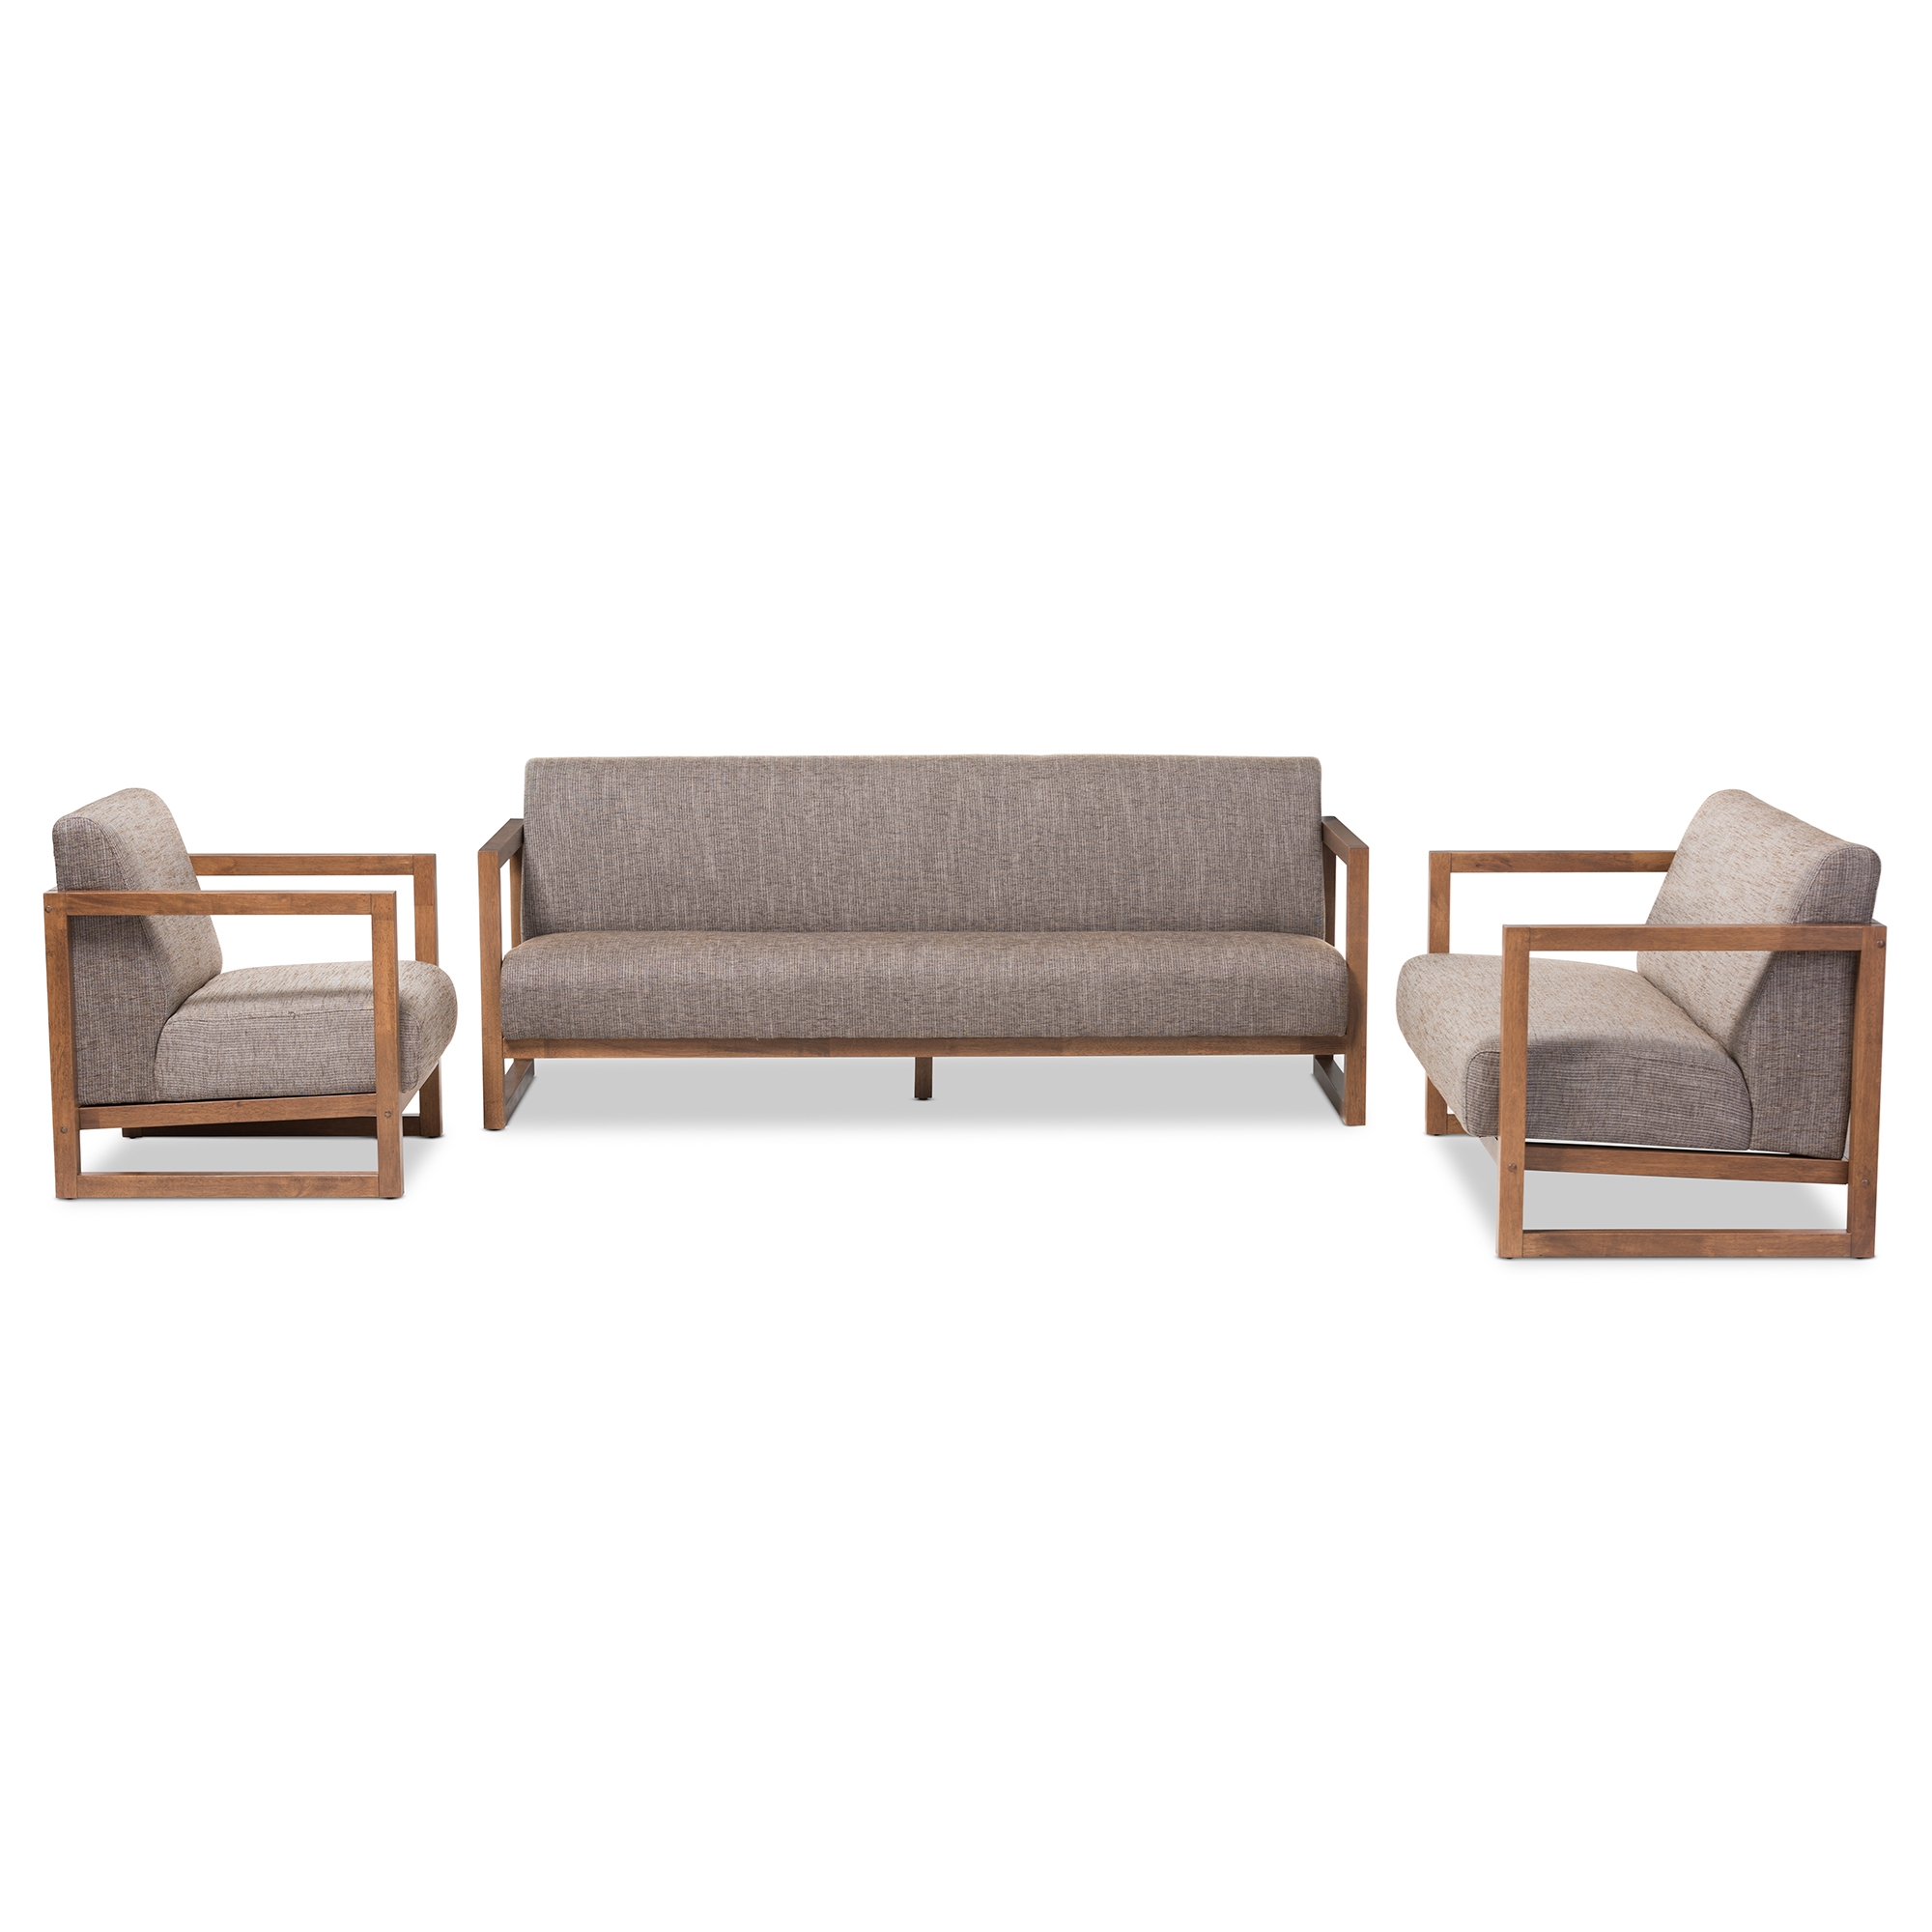 Baxton Studio Valencia Mid Century Modern Walnut Wood Finished Gravel  Fabric Upholstered 3 Piece